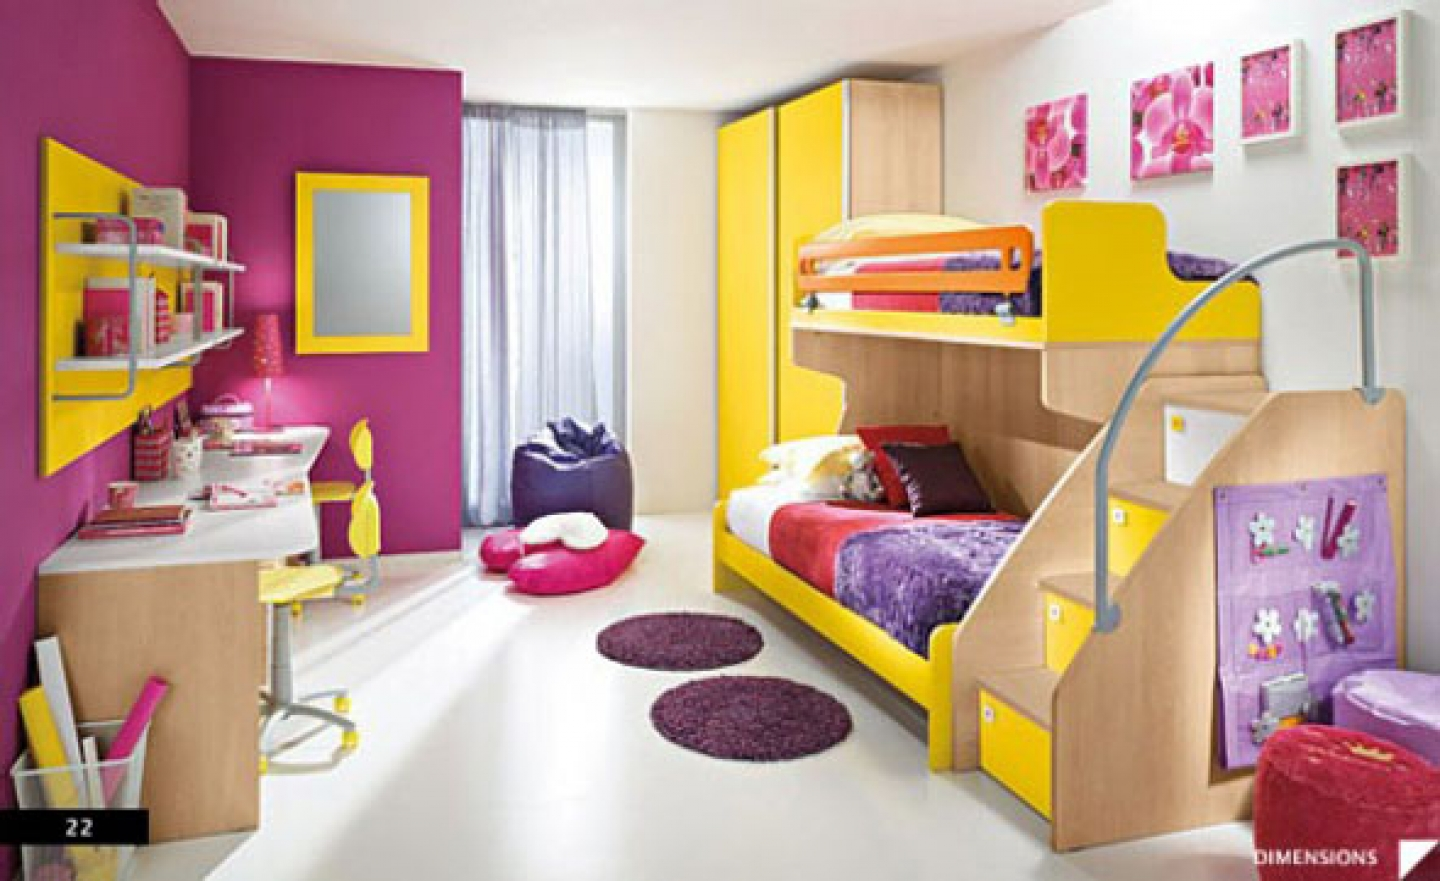 Simple bedroom designs for girls - This Bedroom Is For Two Small Girls It Has Yellow Simple Furniture And A Mix Of Pink And White Wall